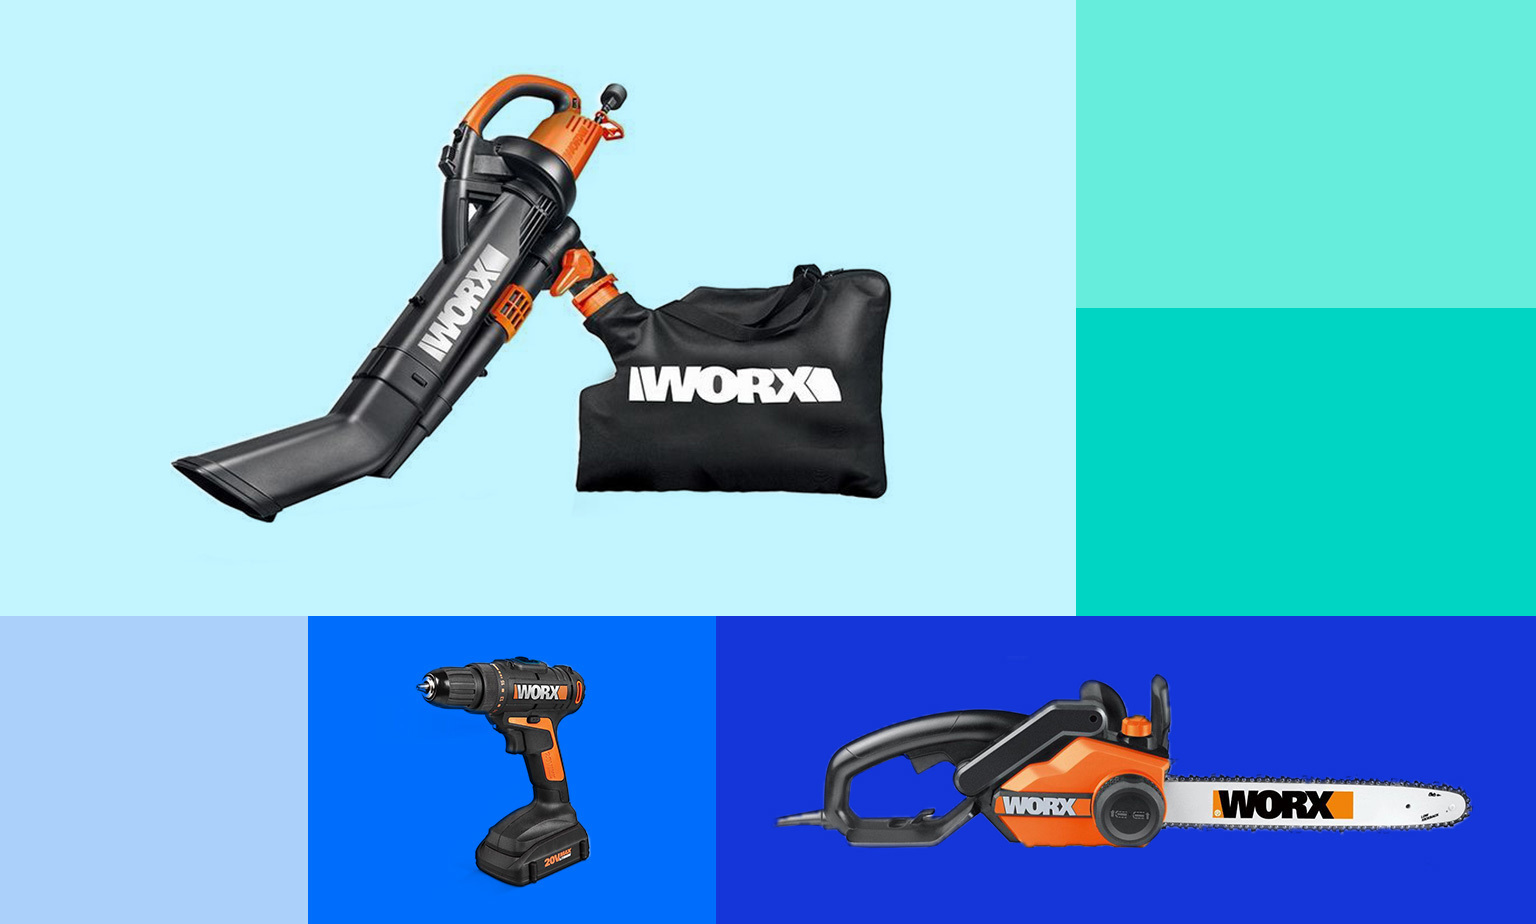 home and garden garden supplies household items ebay worx for every project